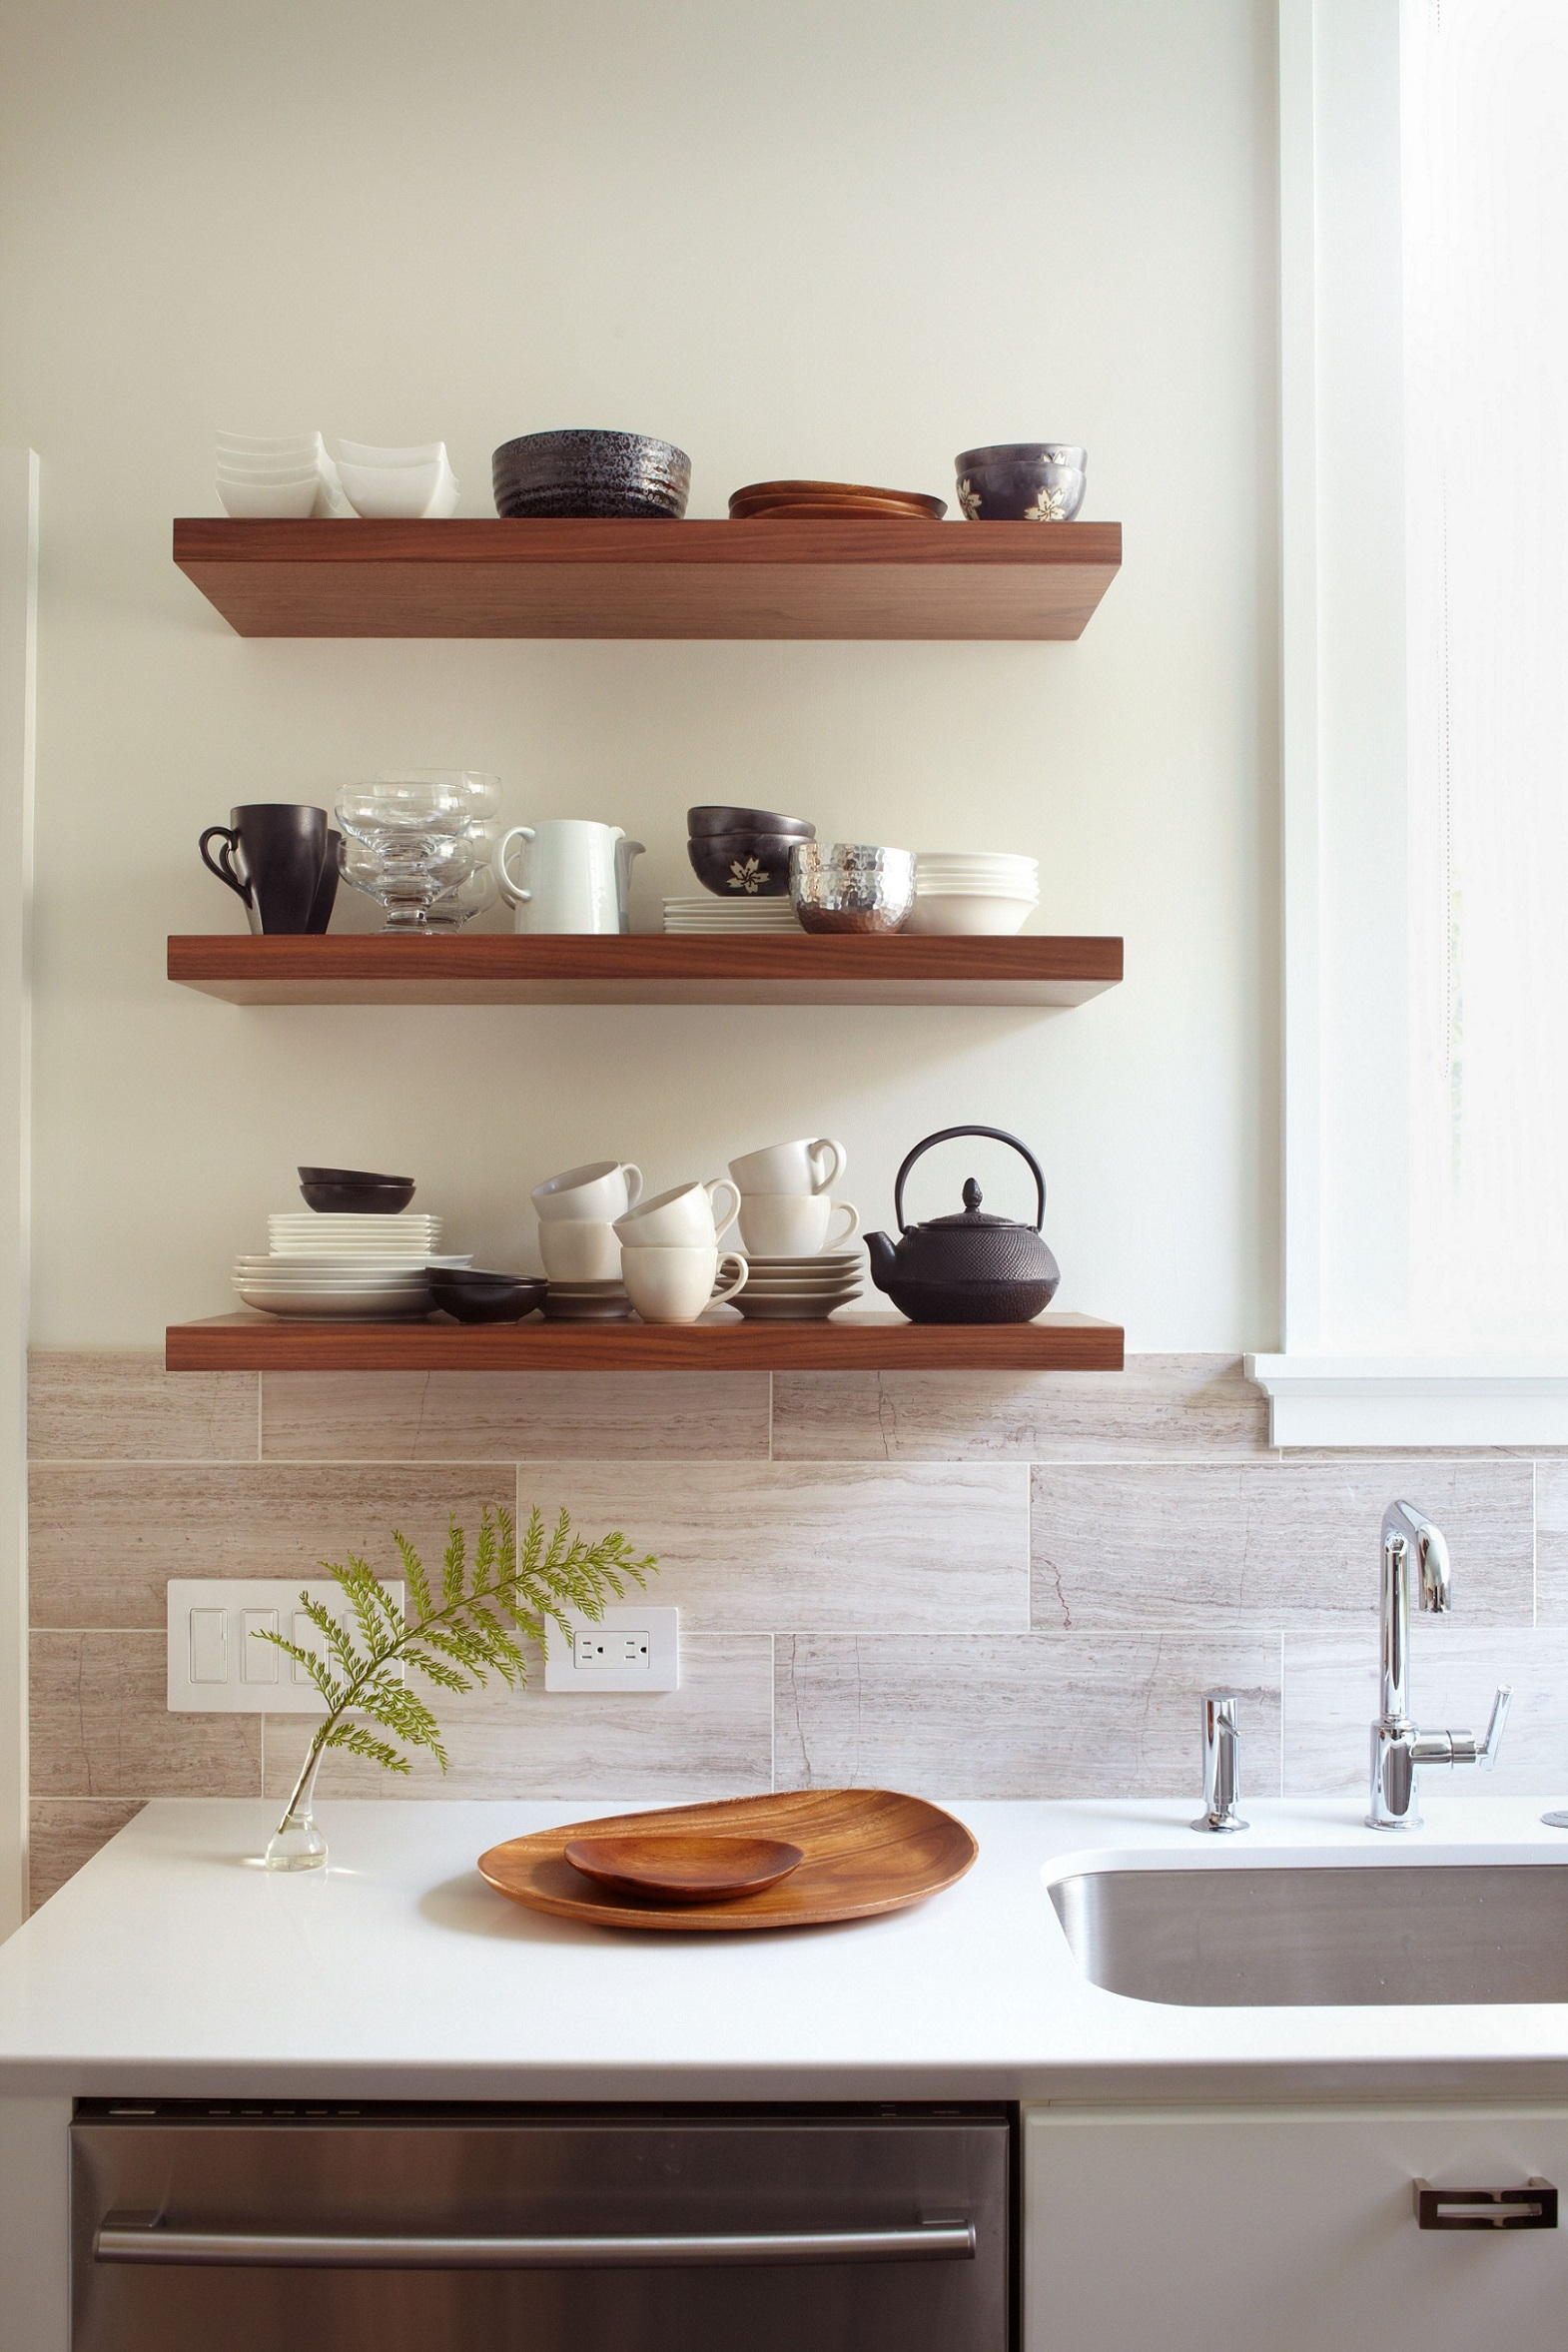 Kitchen Modern Wall Shelves Shelf With Lights Eiforces With Kitchen Wall Shelves (View 8 of 12)